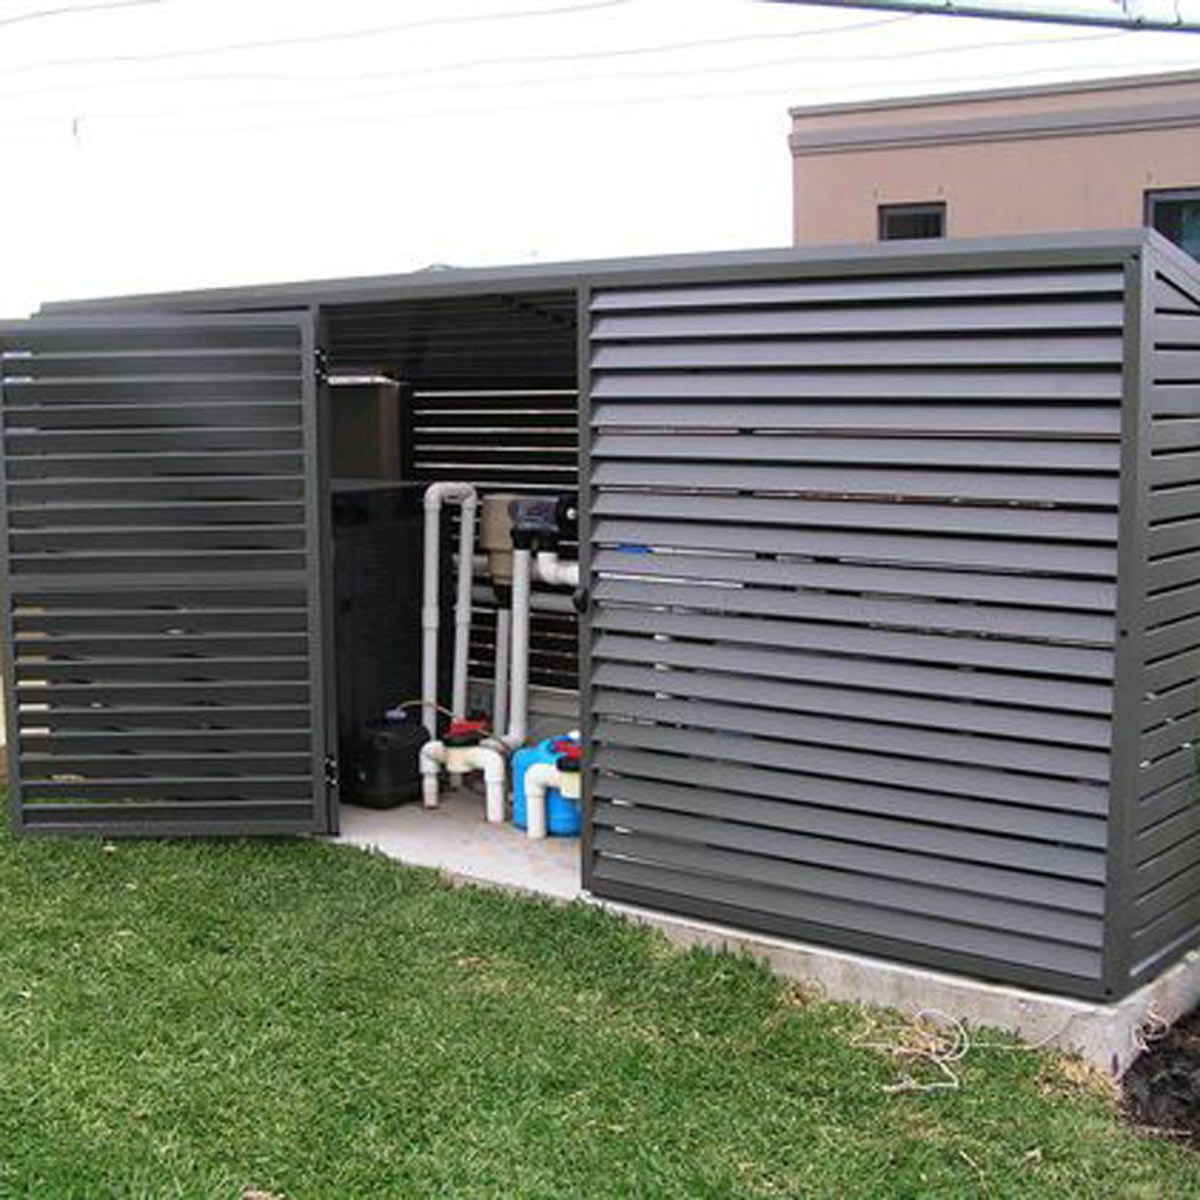 How to Hide an Air Conditioner 9 Clever Ways Pool shed